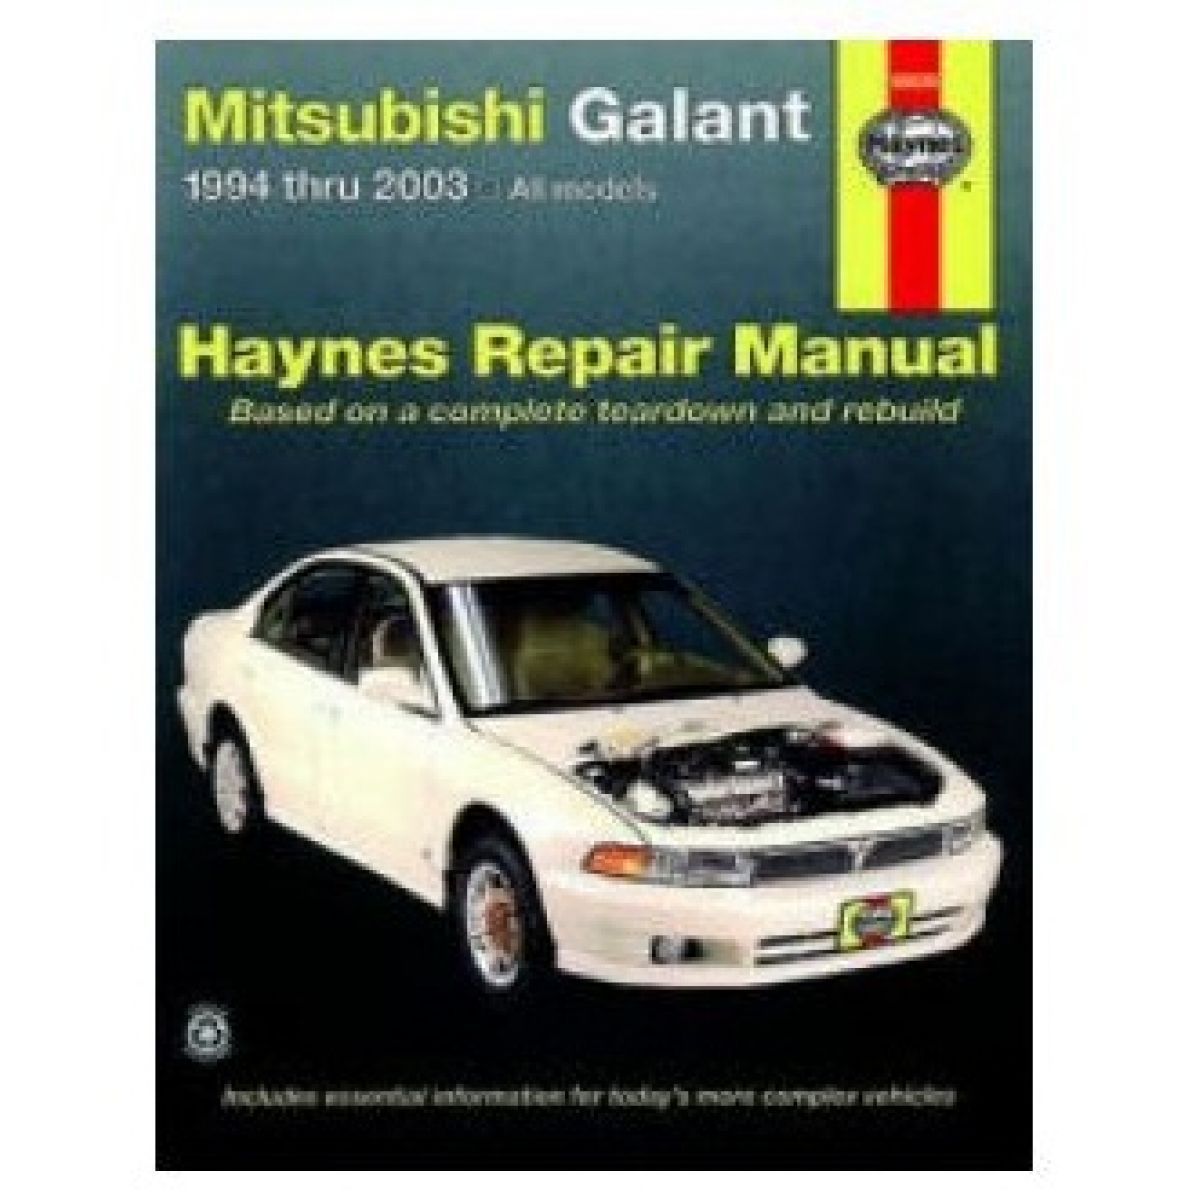 Haynes Repair Manual for Mitsubishi Galant 94-00 01 02 03